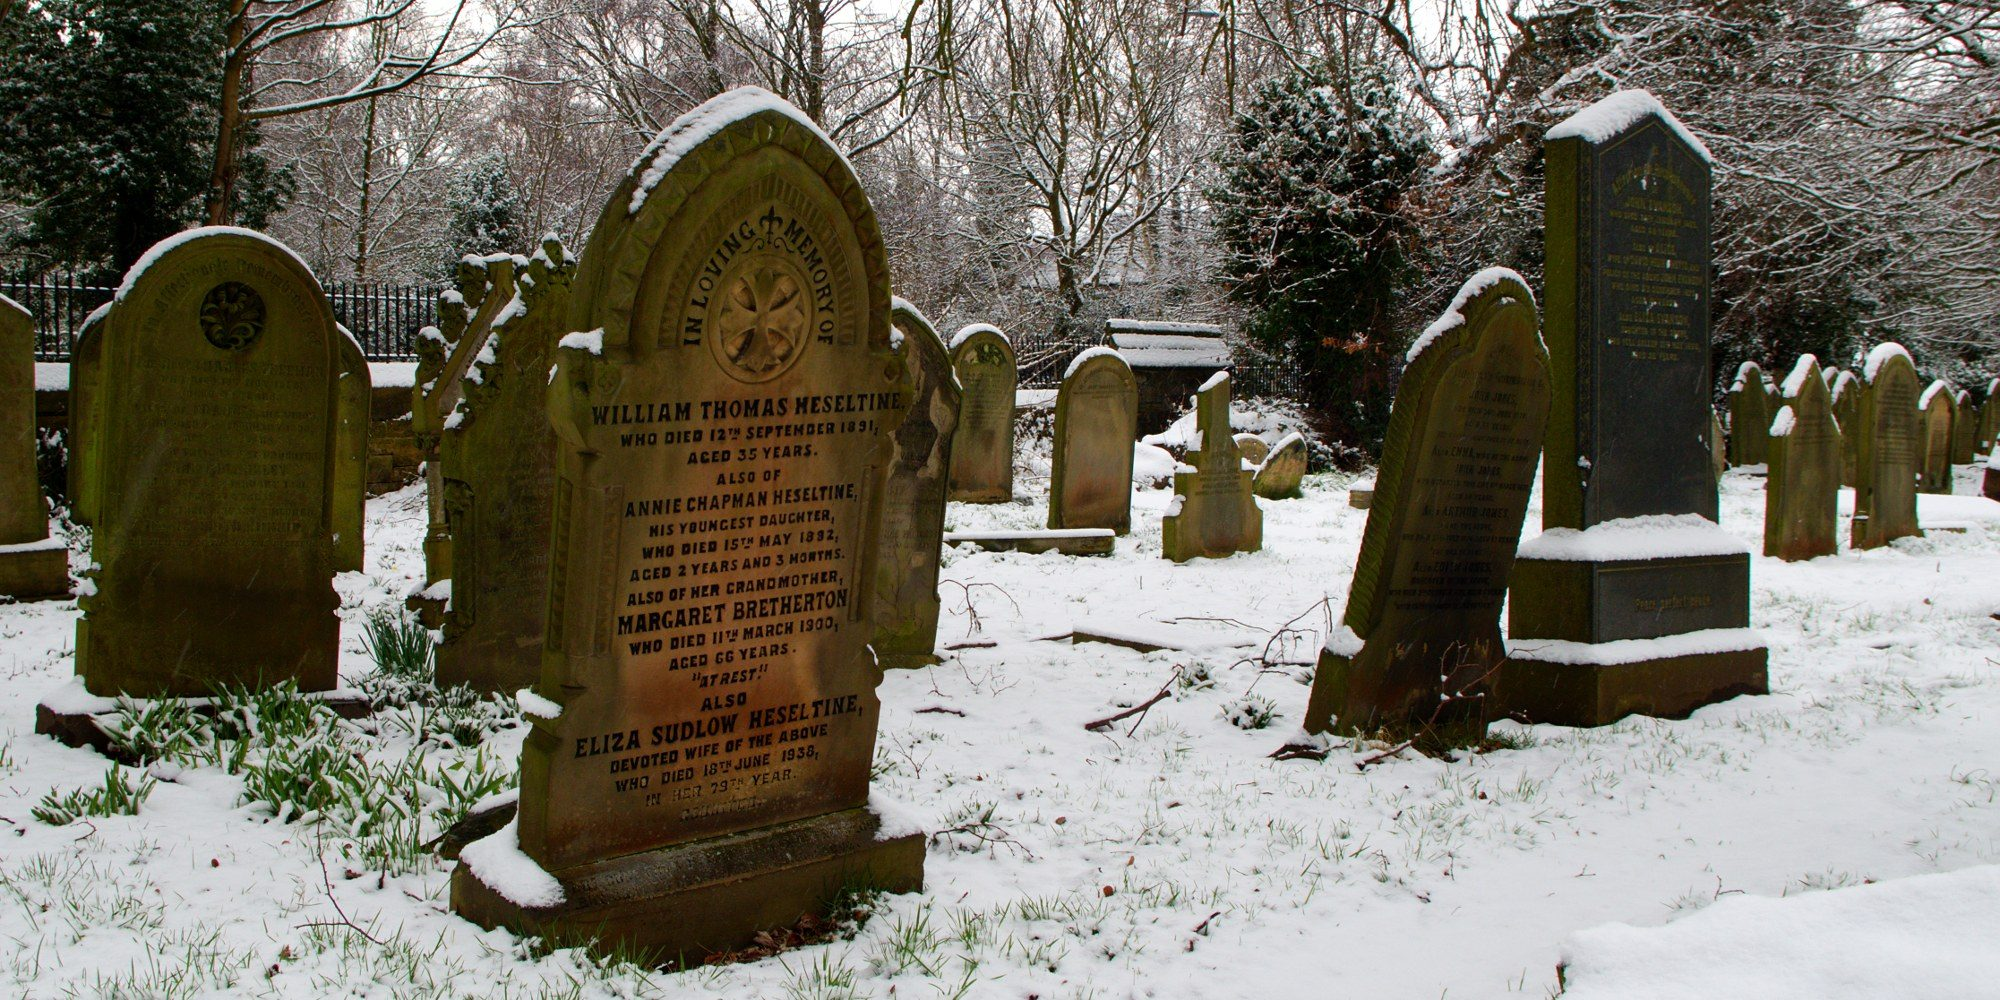 Snow covered Memorial Stones